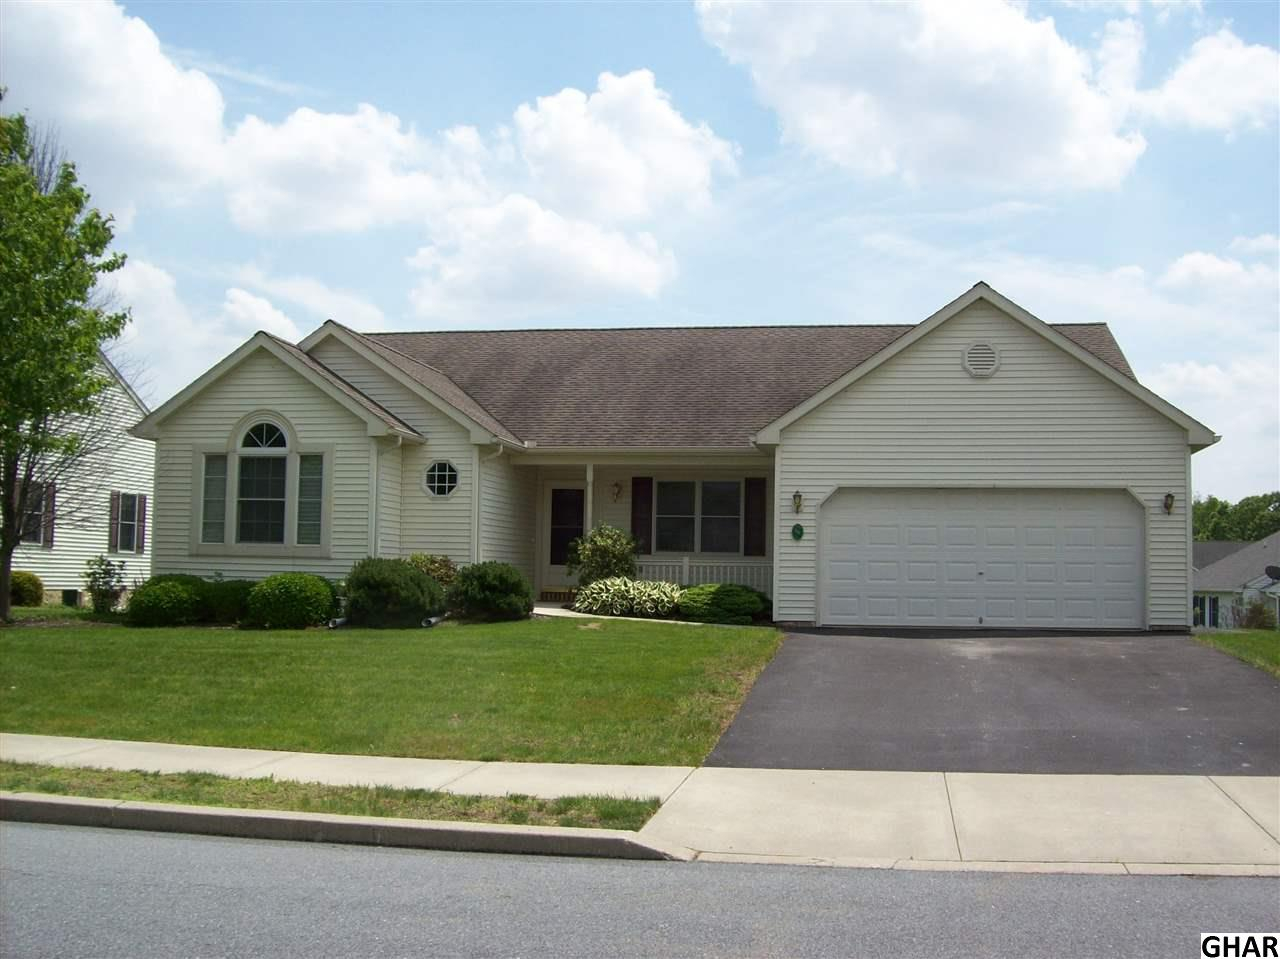 16 Greenbriar Dr, Myerstown, PA 17067